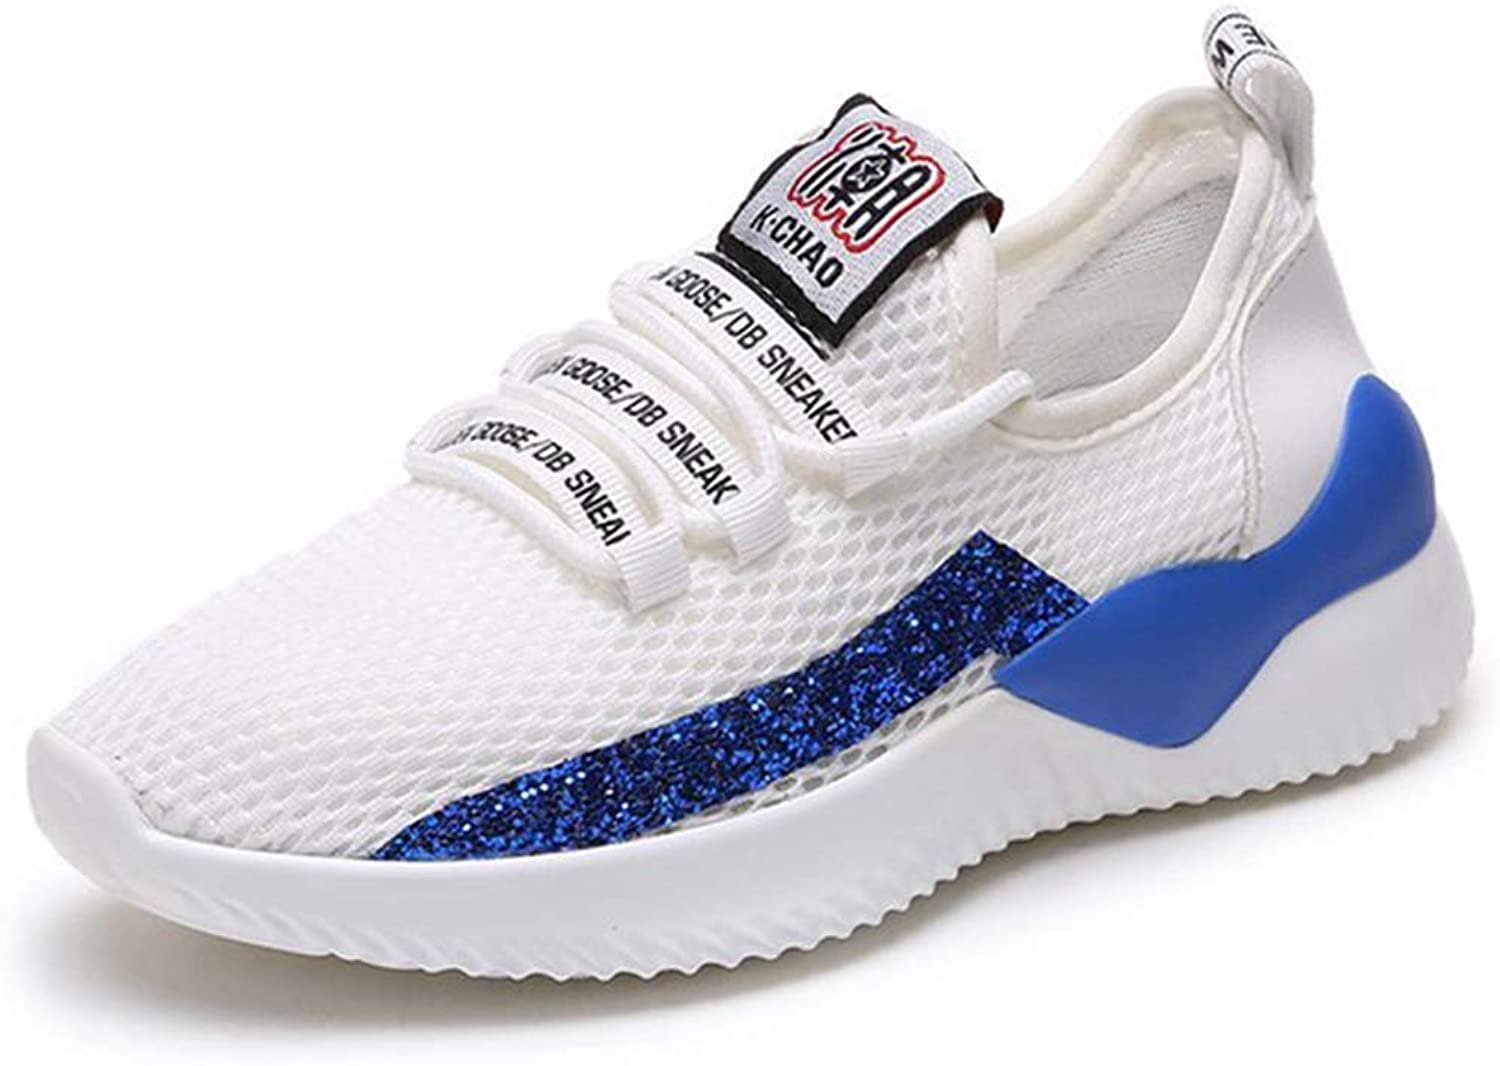 GIY Women's Lightweight Walking shoes Breathable Mesh Casual Sport Running shoes Fashion Sneakers